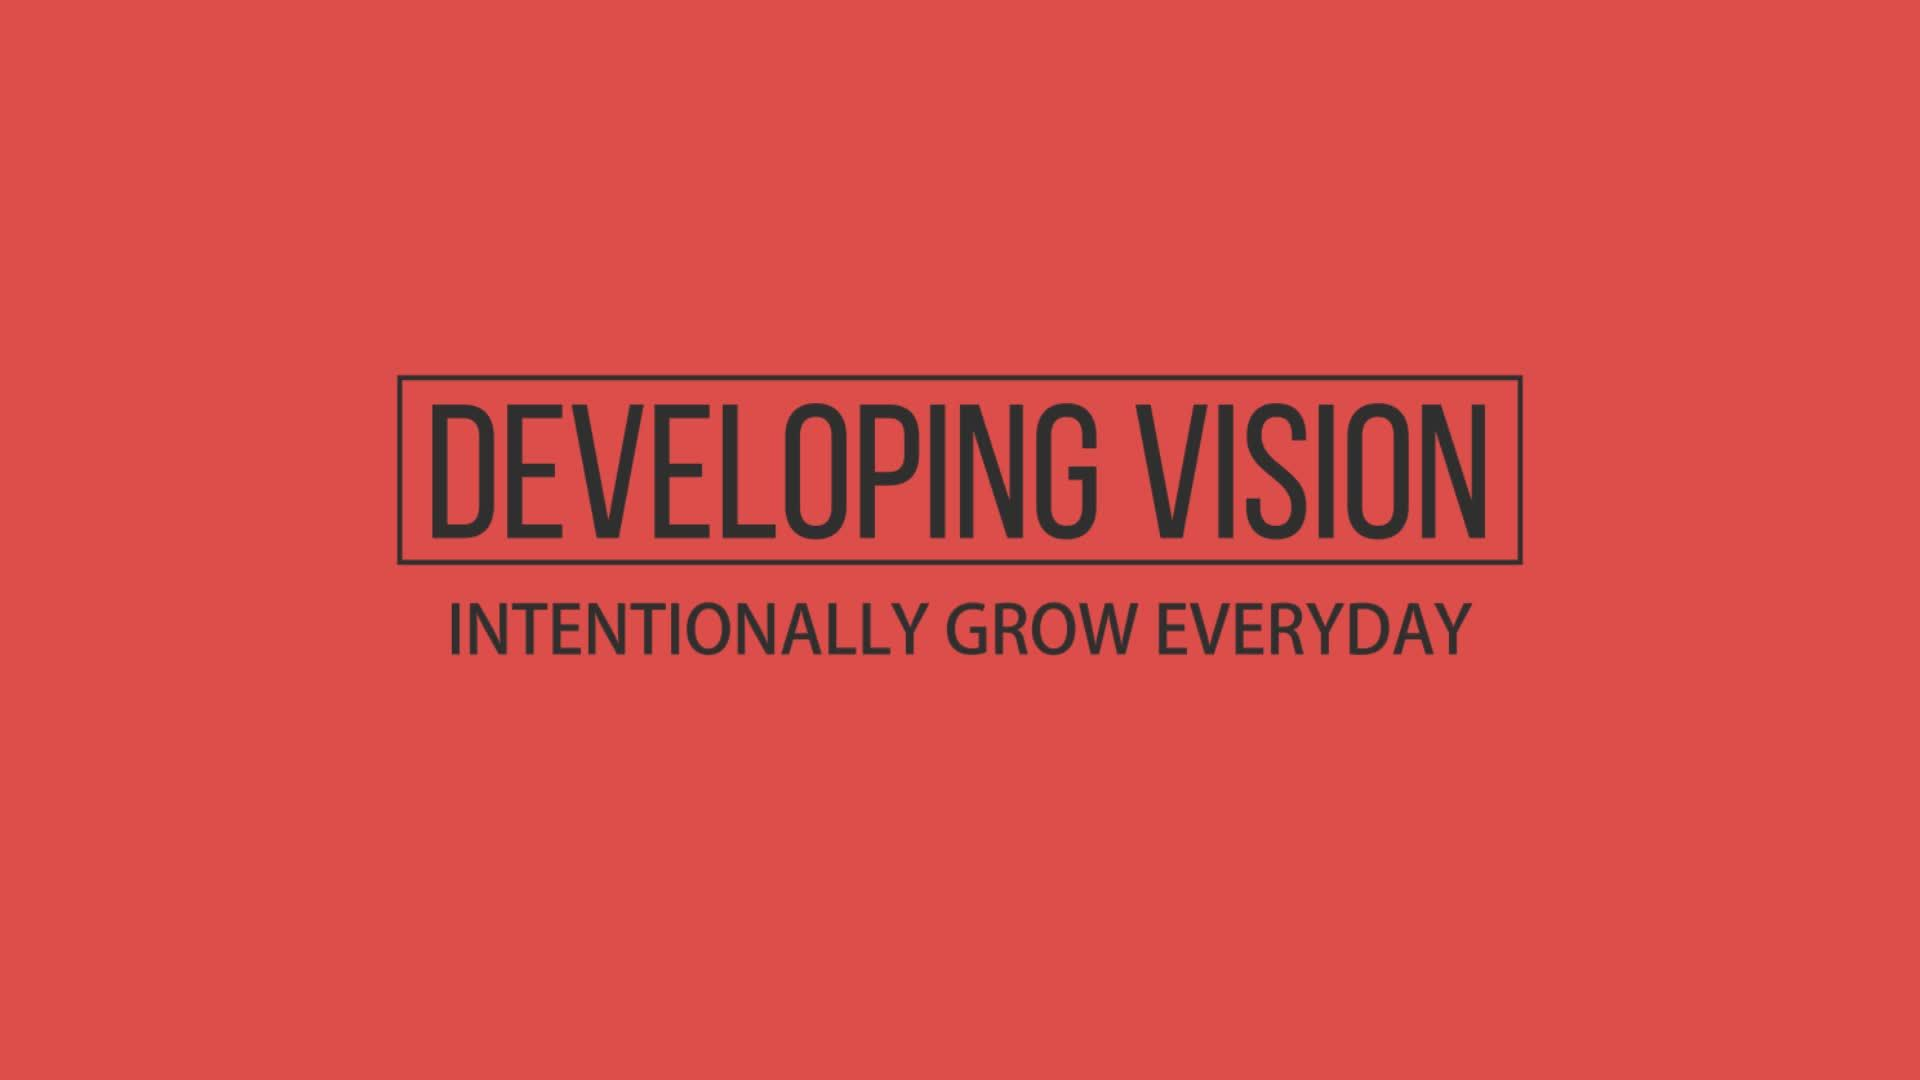 Developing Vision - Intentionally Grow Everyday